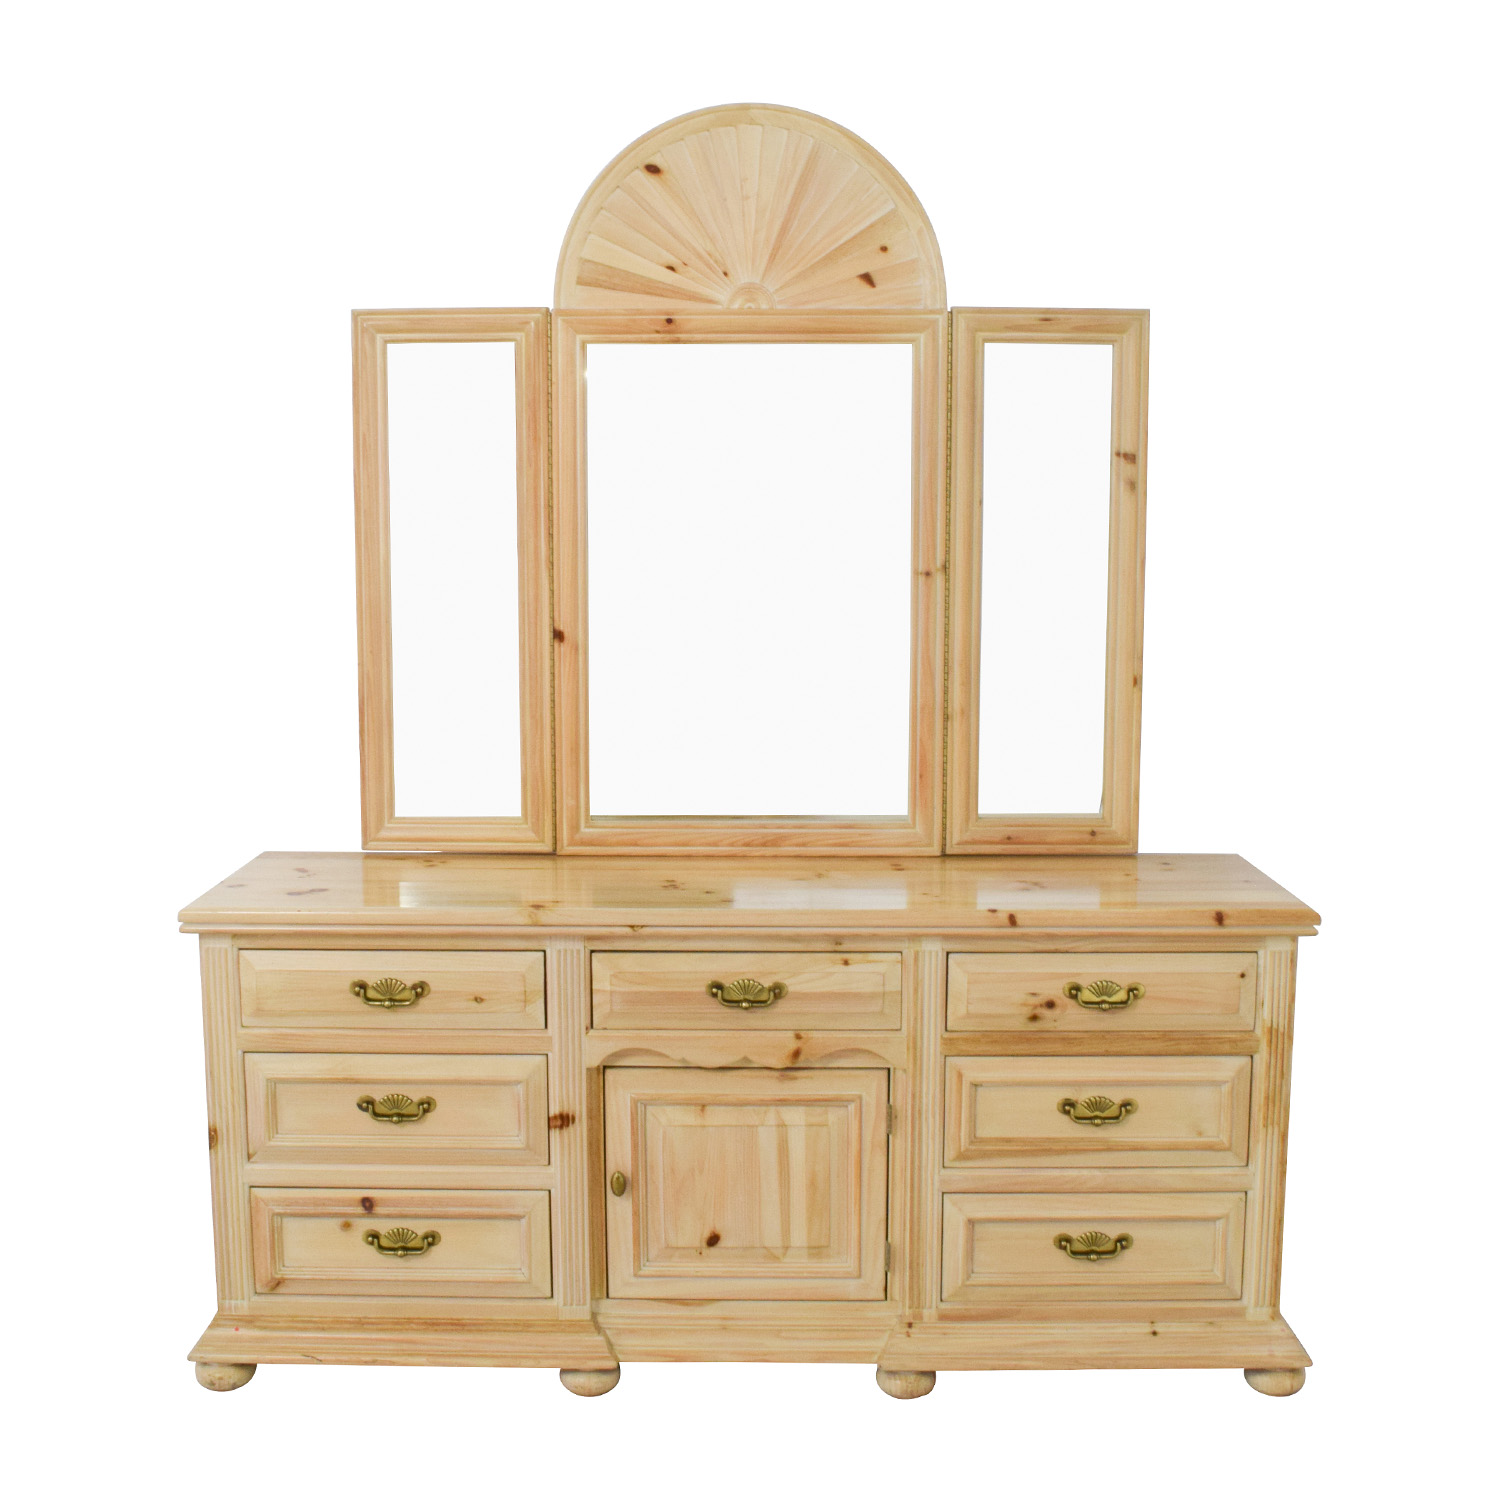 Link Taylor Link Taylor Natural Seven-Drawer Dresser with Mirror